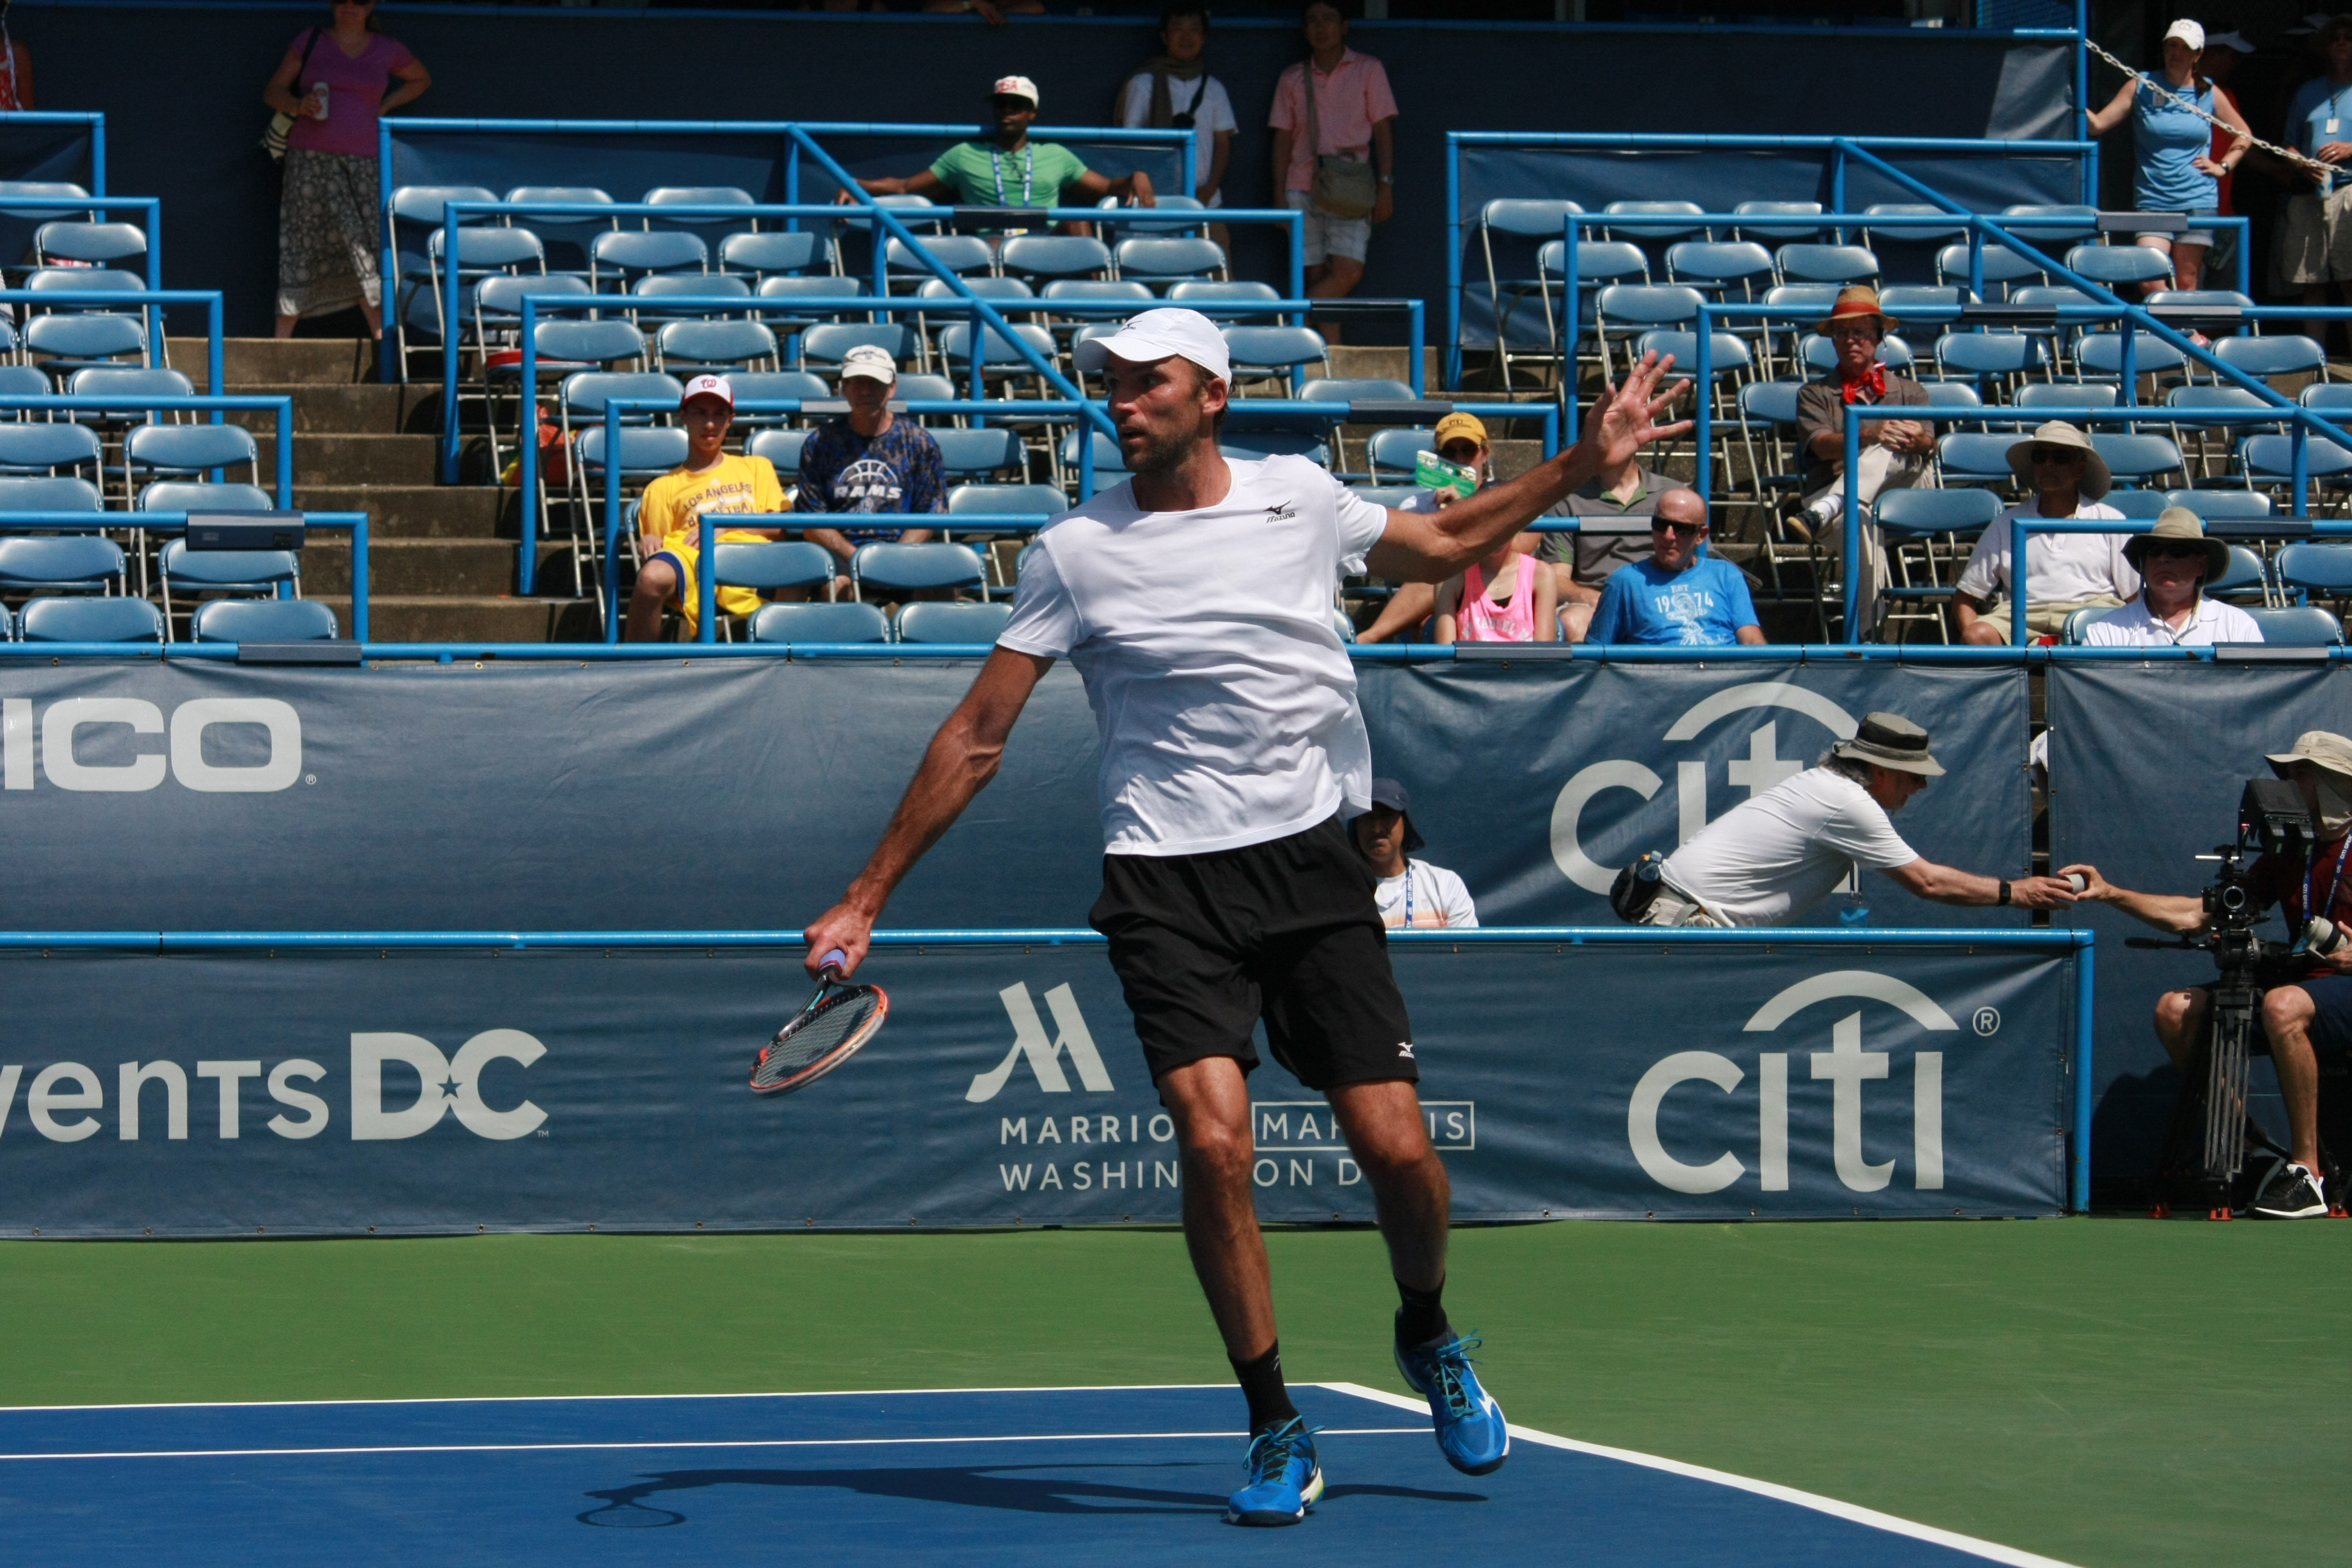 Ivo Karlovic Backhand Slice - 2016 Citi Open